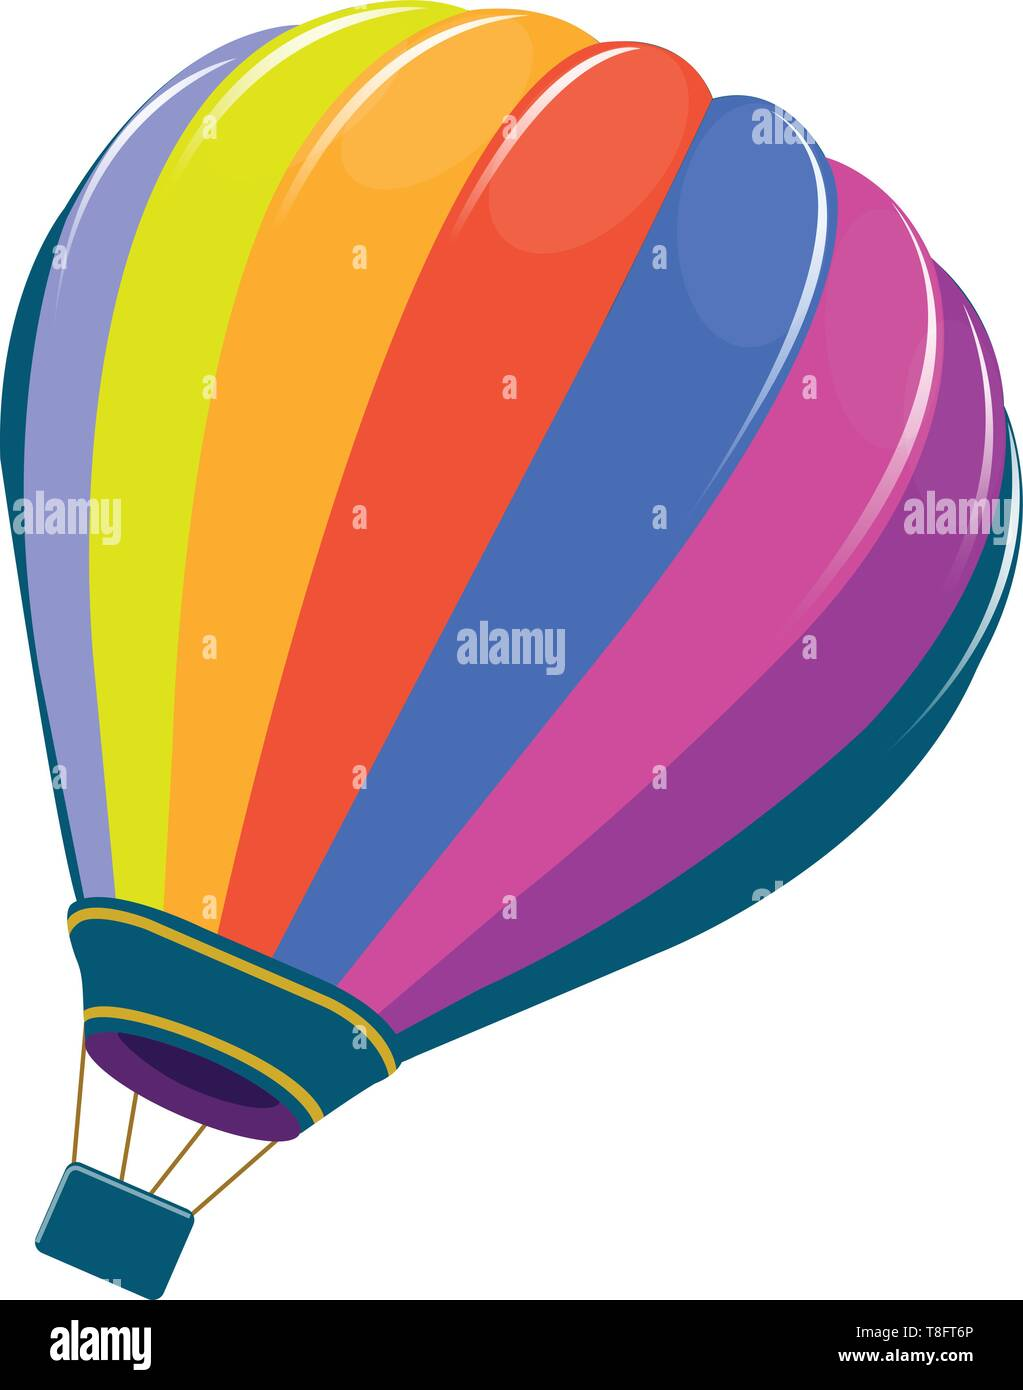 - A Picture Of A Very Colorful Hot Air Balloon, Vector, Color